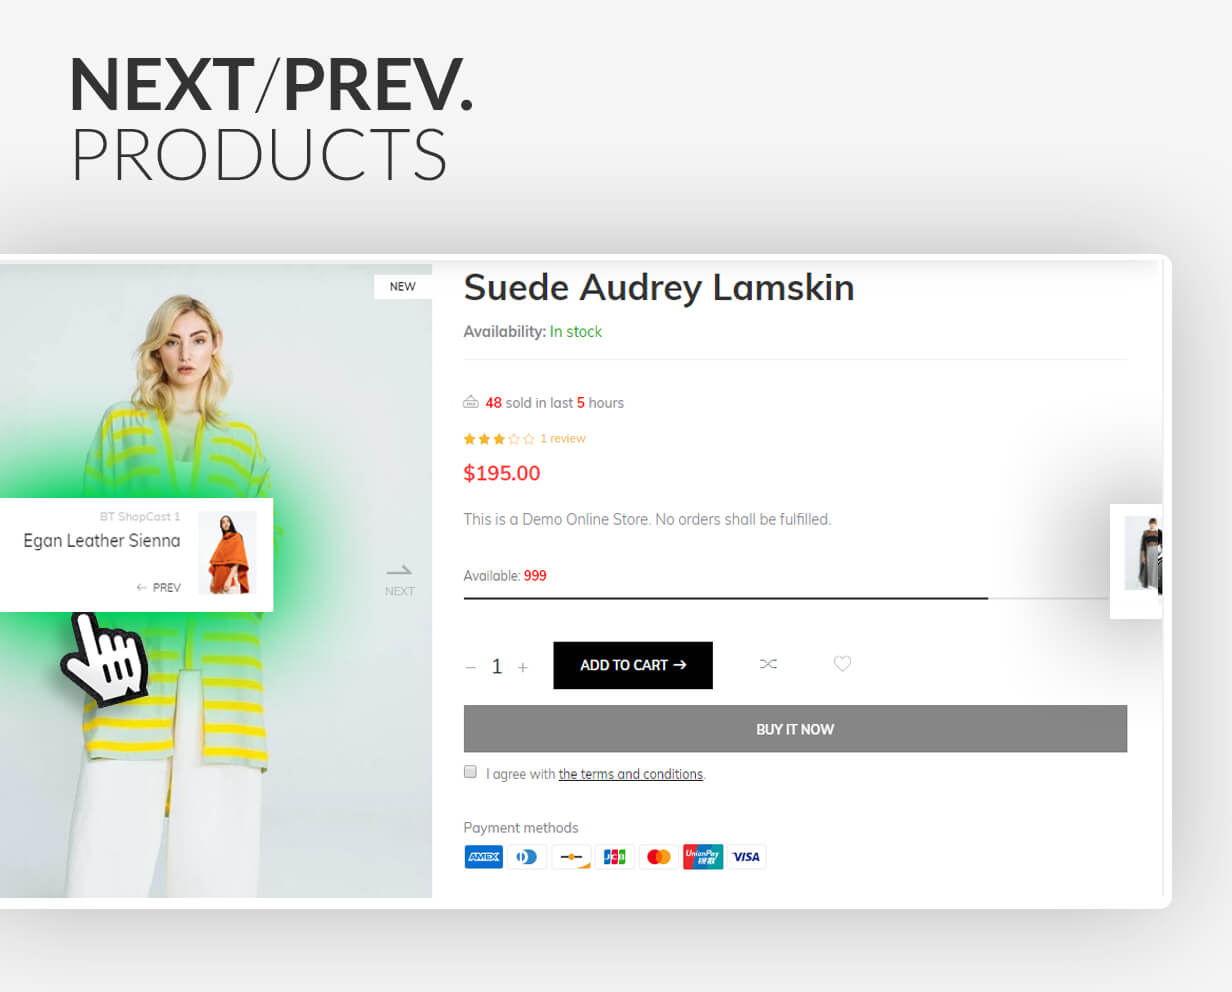 Next/Prev products on the product page